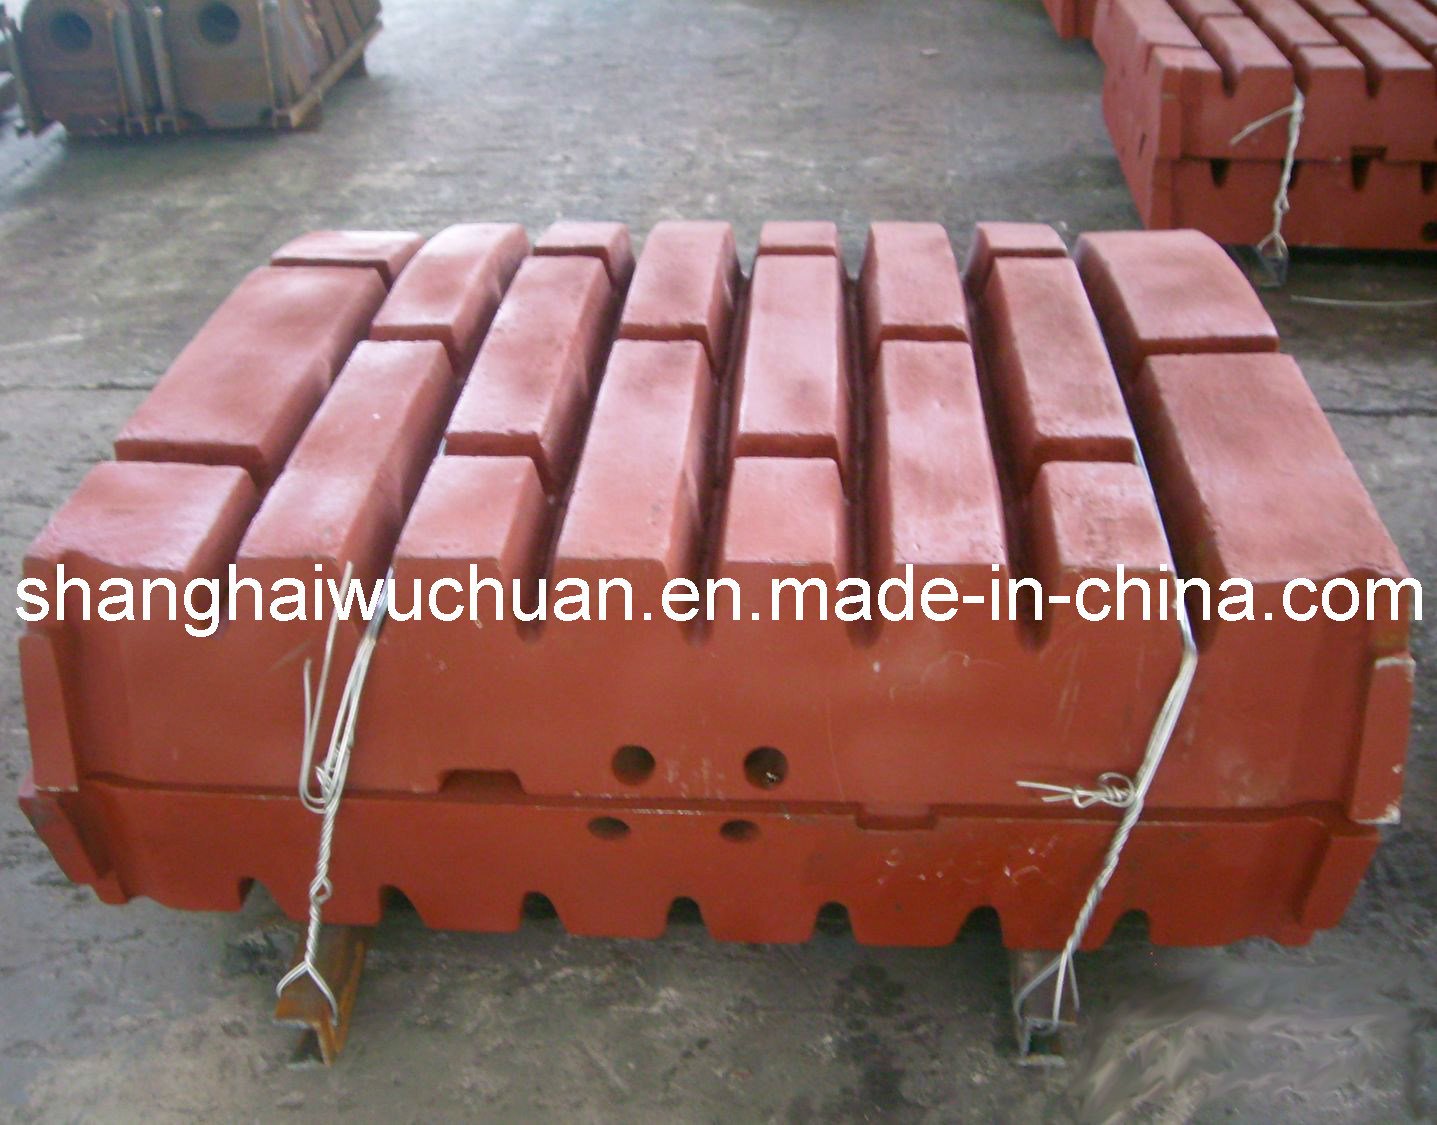 Manganese Steel Jaw Plate for Jaw Crusher